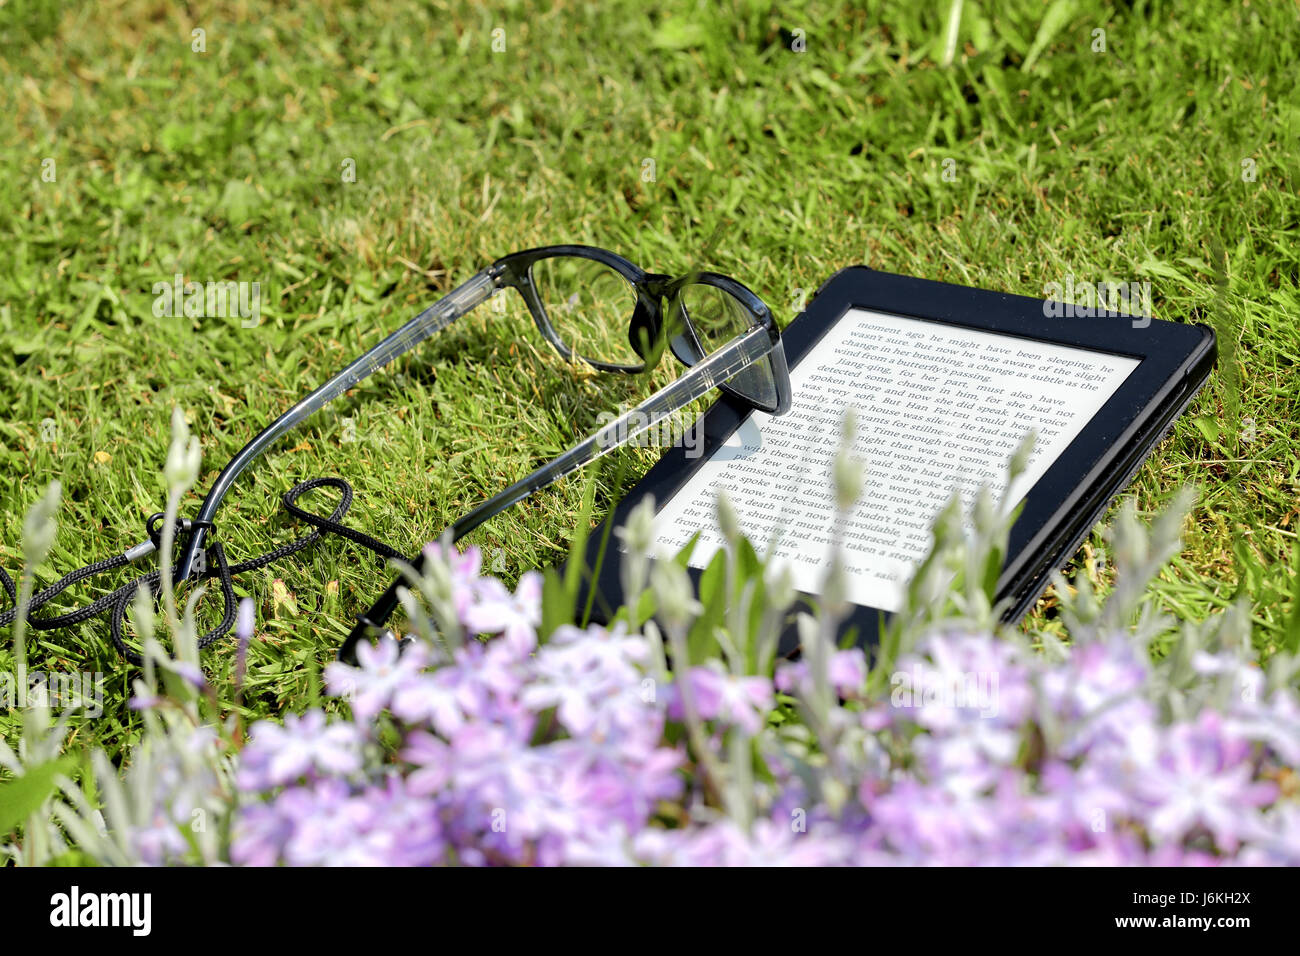 An electronic book reader and glasses on the grass - Stock Image